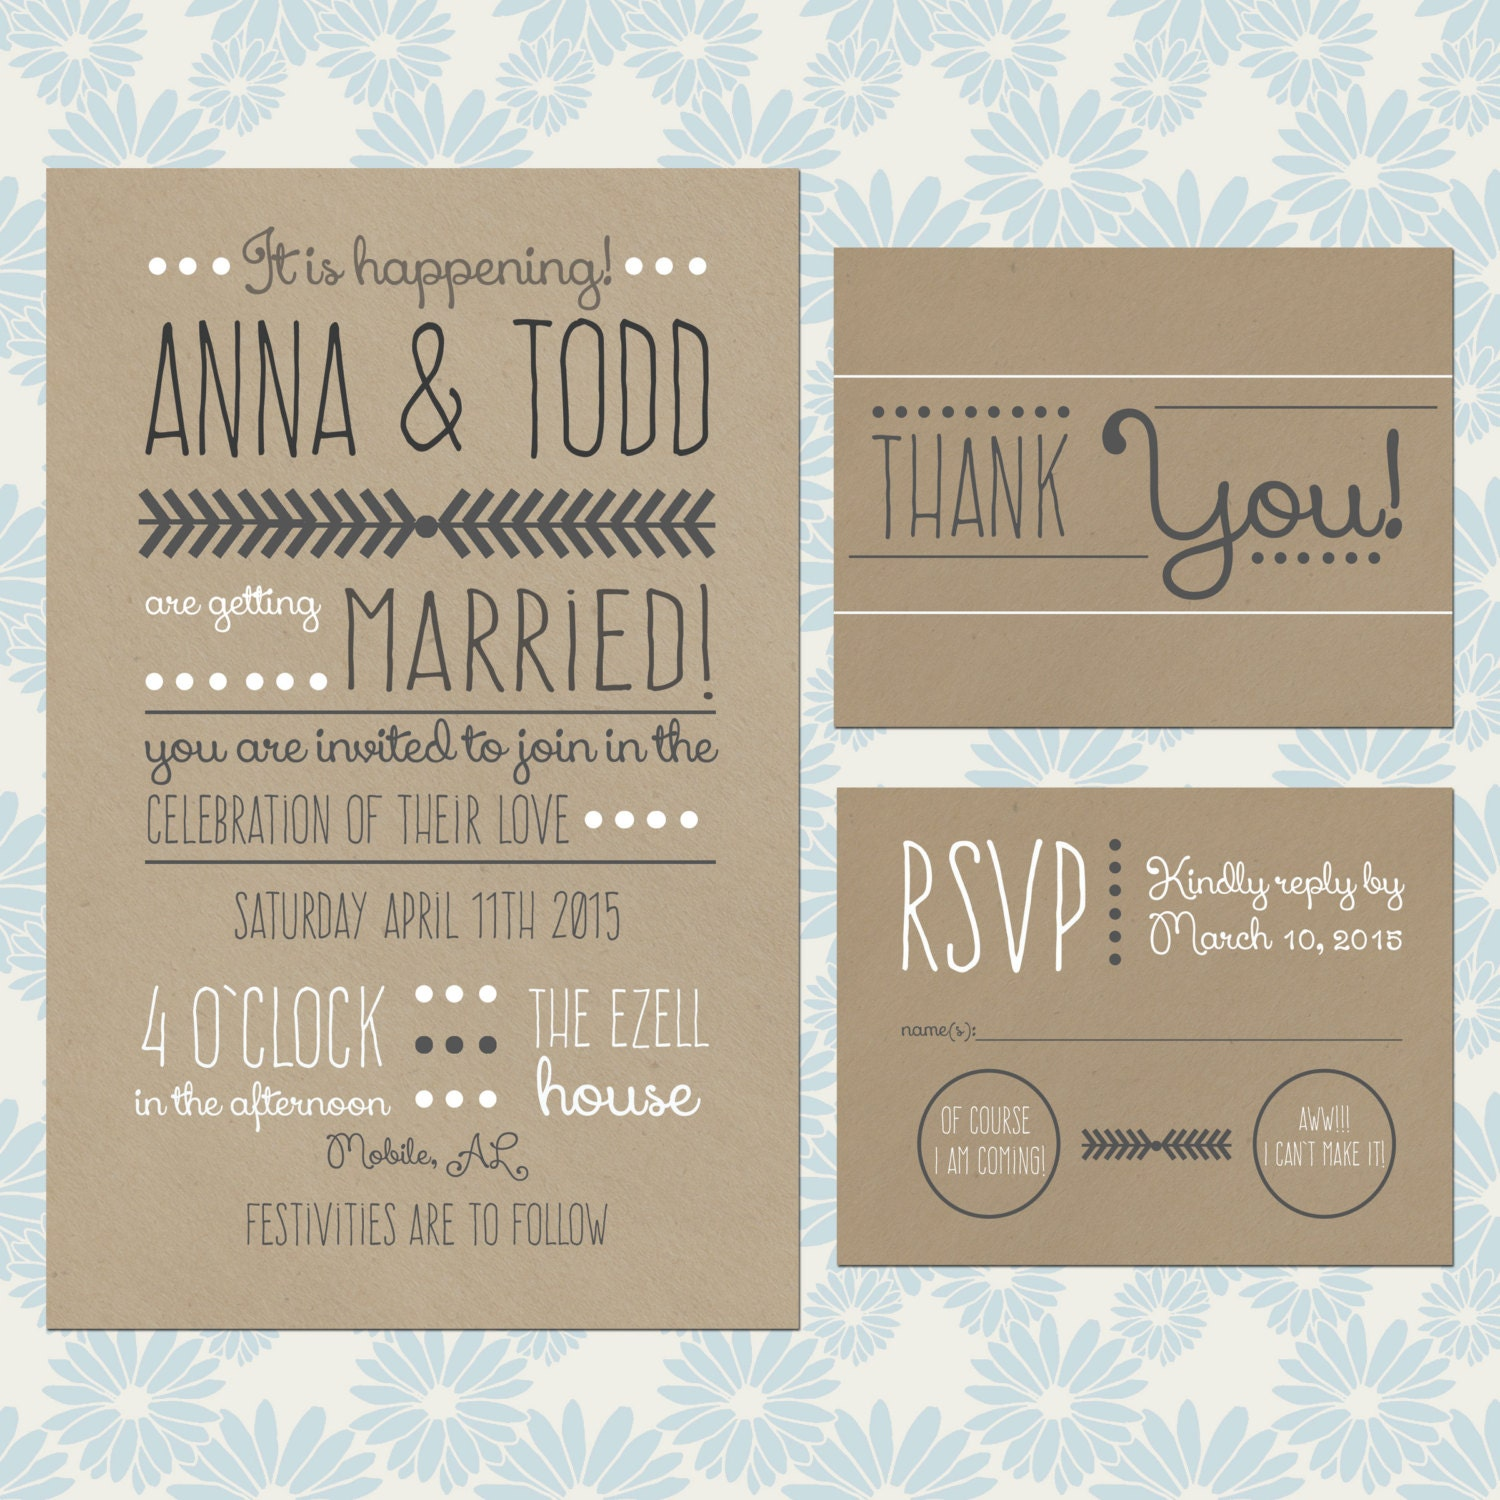 For Without Words Paper Wedding Invitations: Chic Craft Paper Wedding Invitation Set